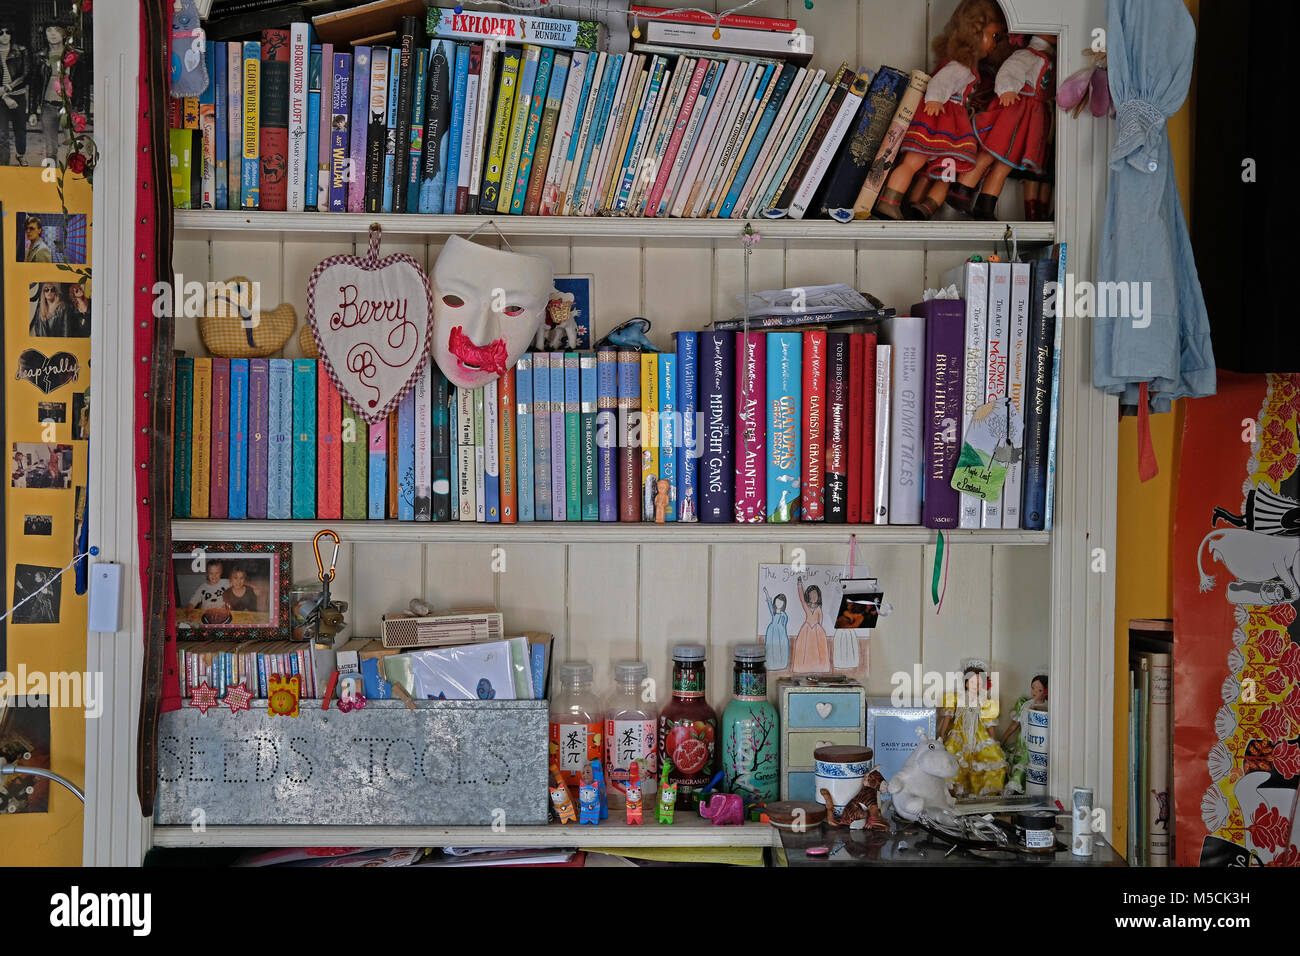 A book shelf in a girls bedroom. - Stock Image